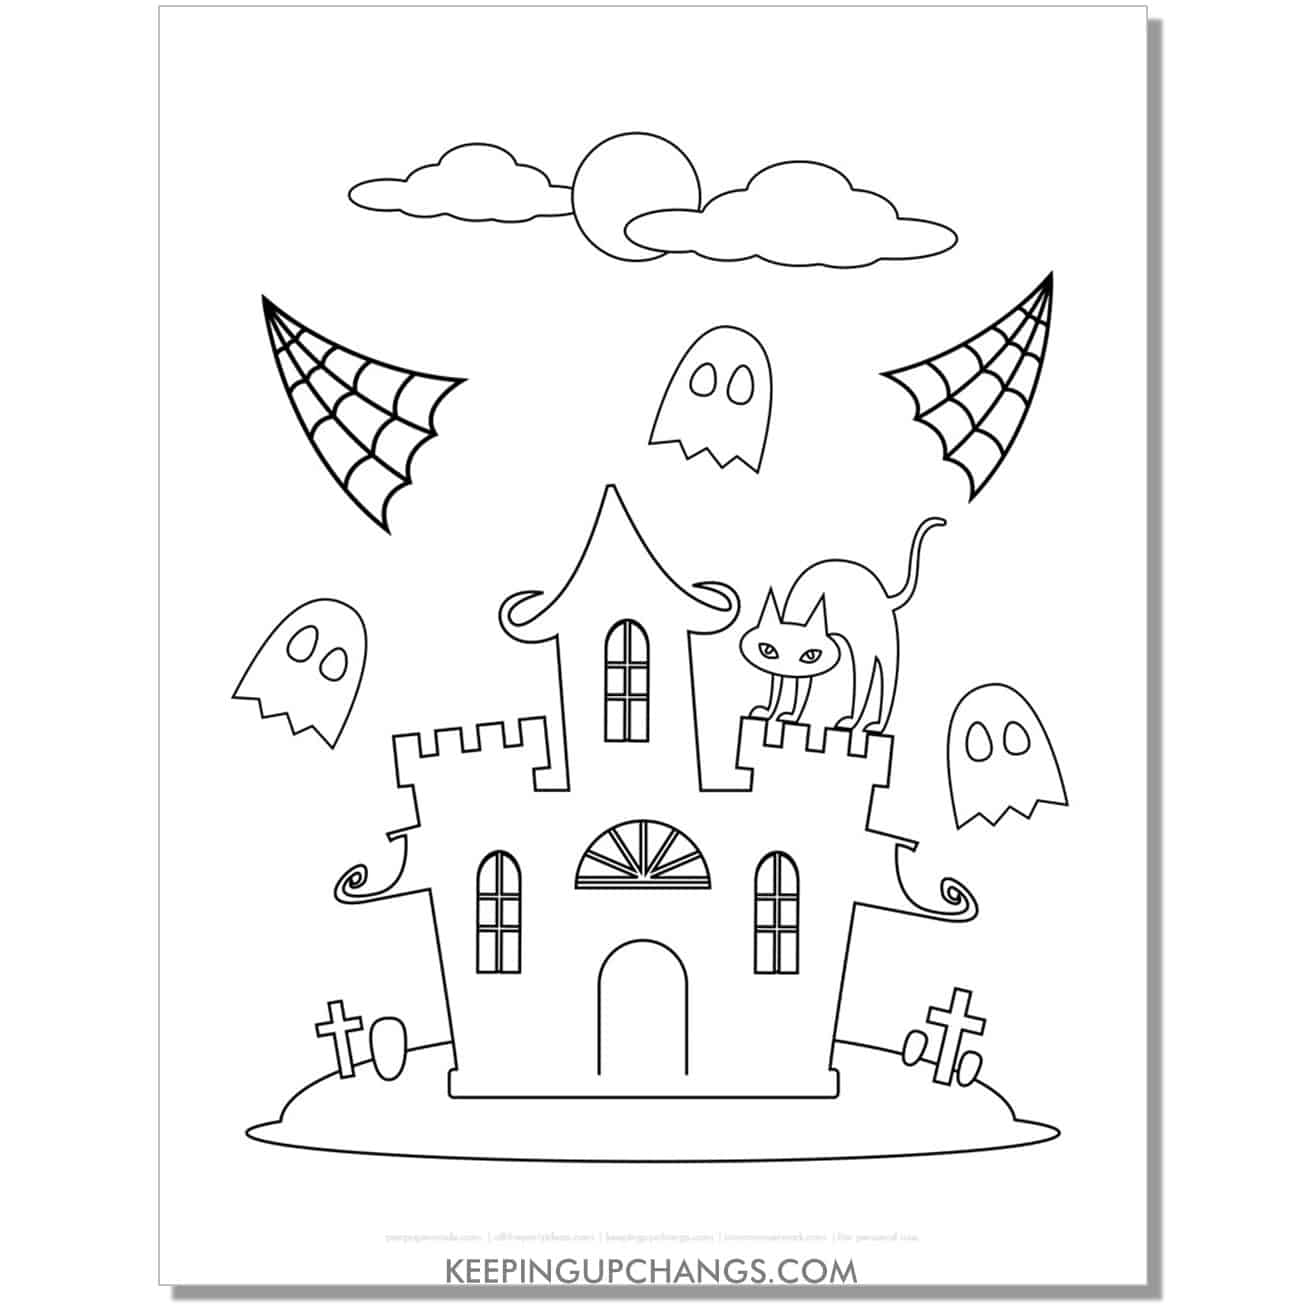 free haunted castle with black cat, ghosts, and spiderwebs coloring page.